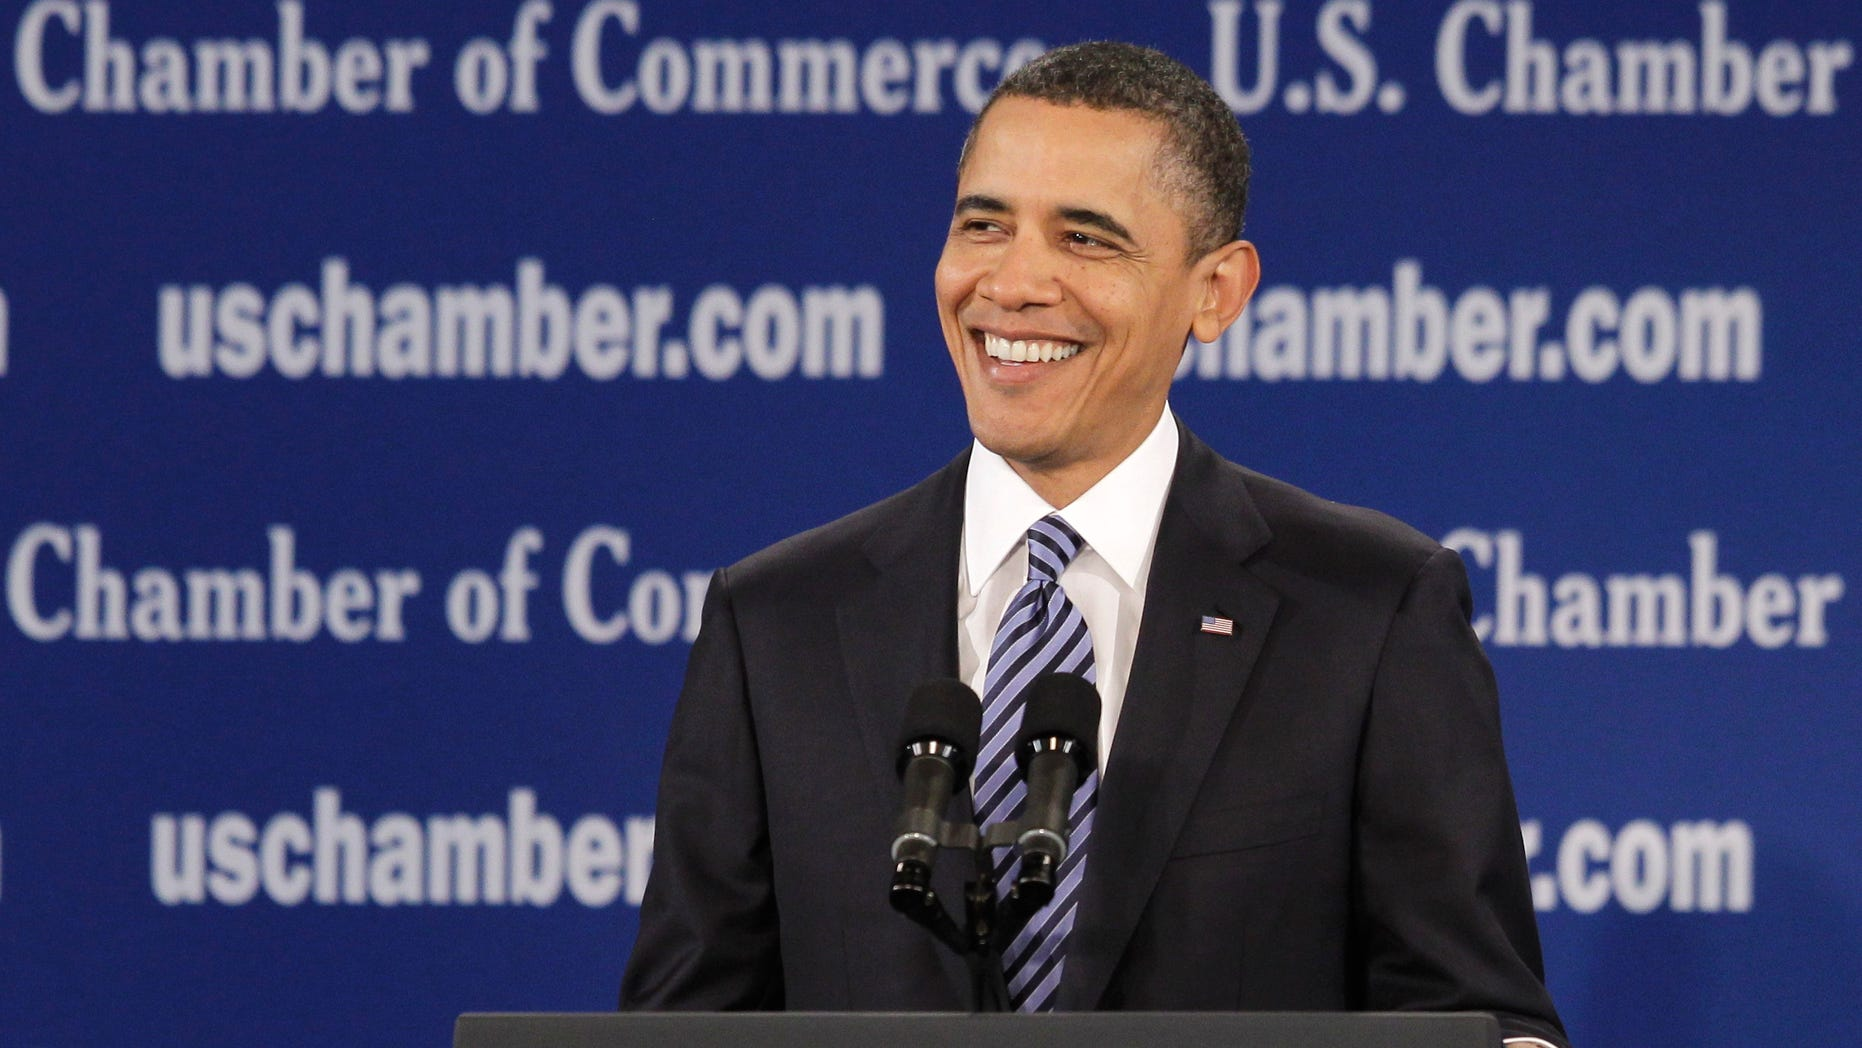 Feb. 7: Obama speaks at the U.S. Chamber of Commerce in Washington.